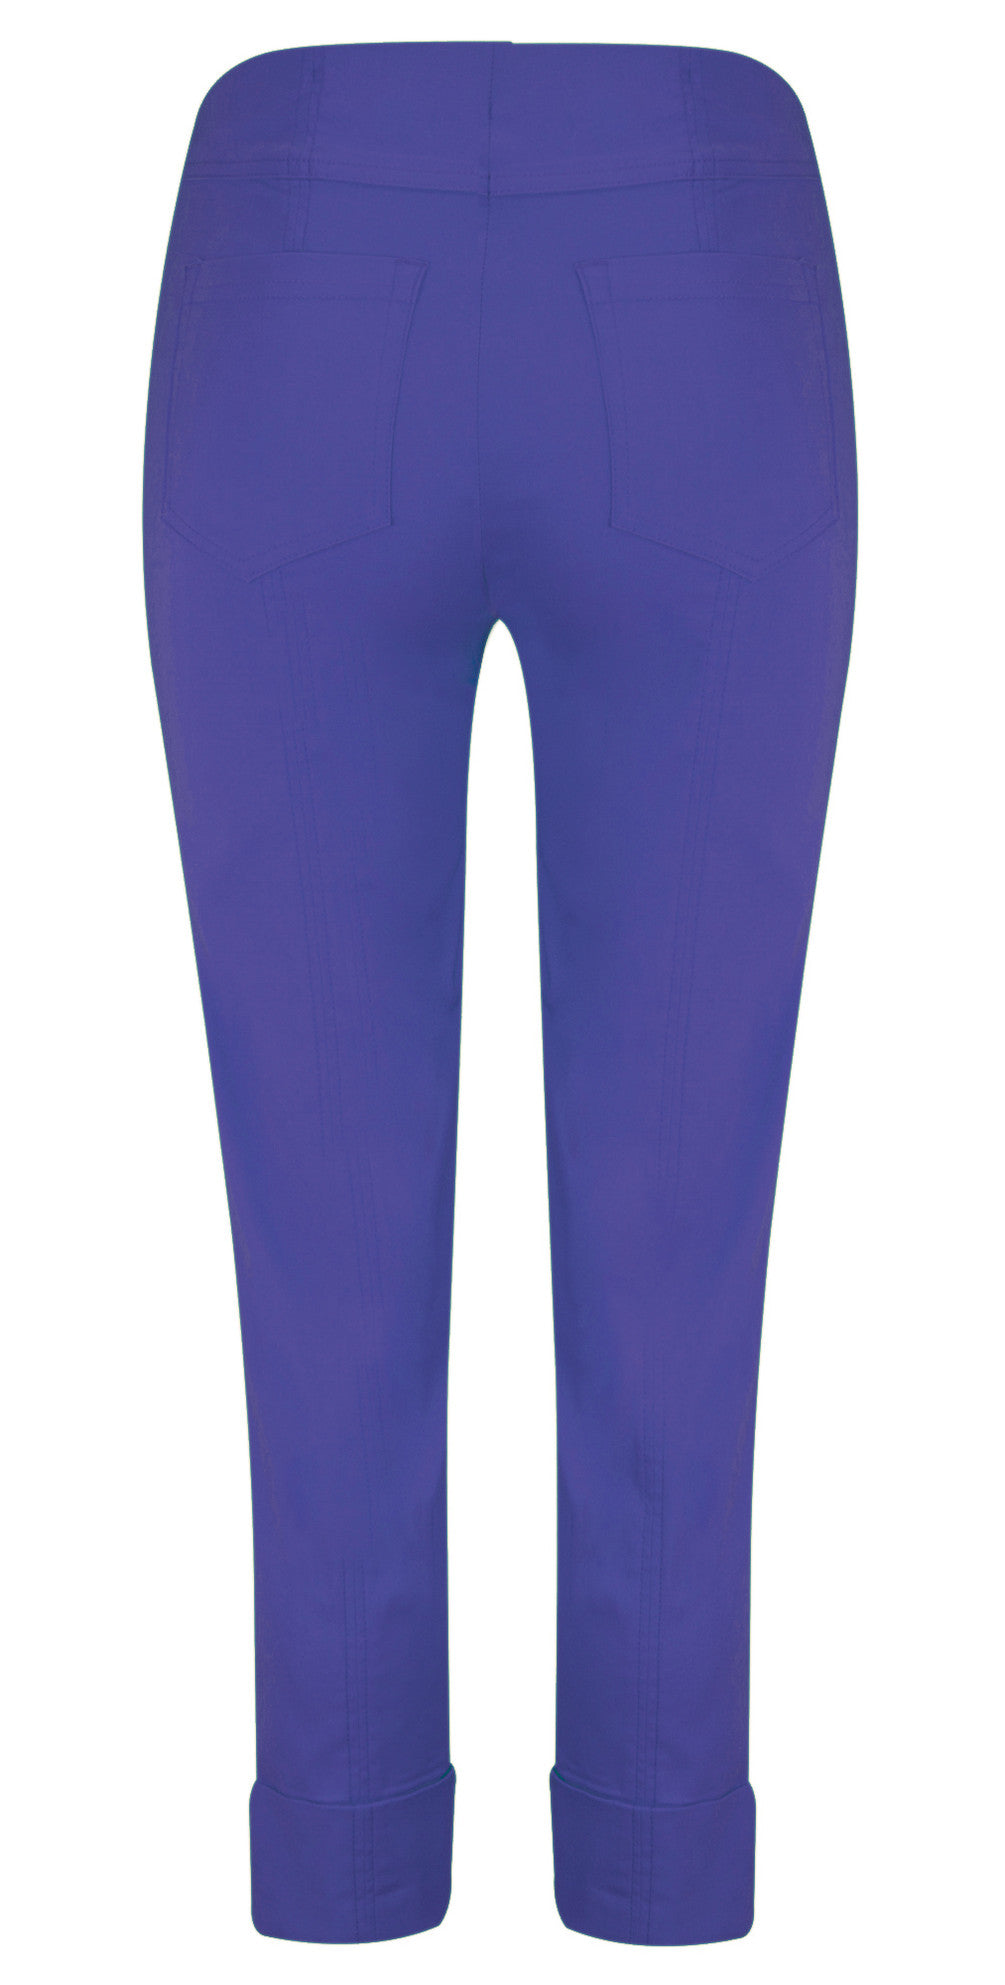 Robell Bella 7/8 Cuff Trousers for Ladies in Royal Blue